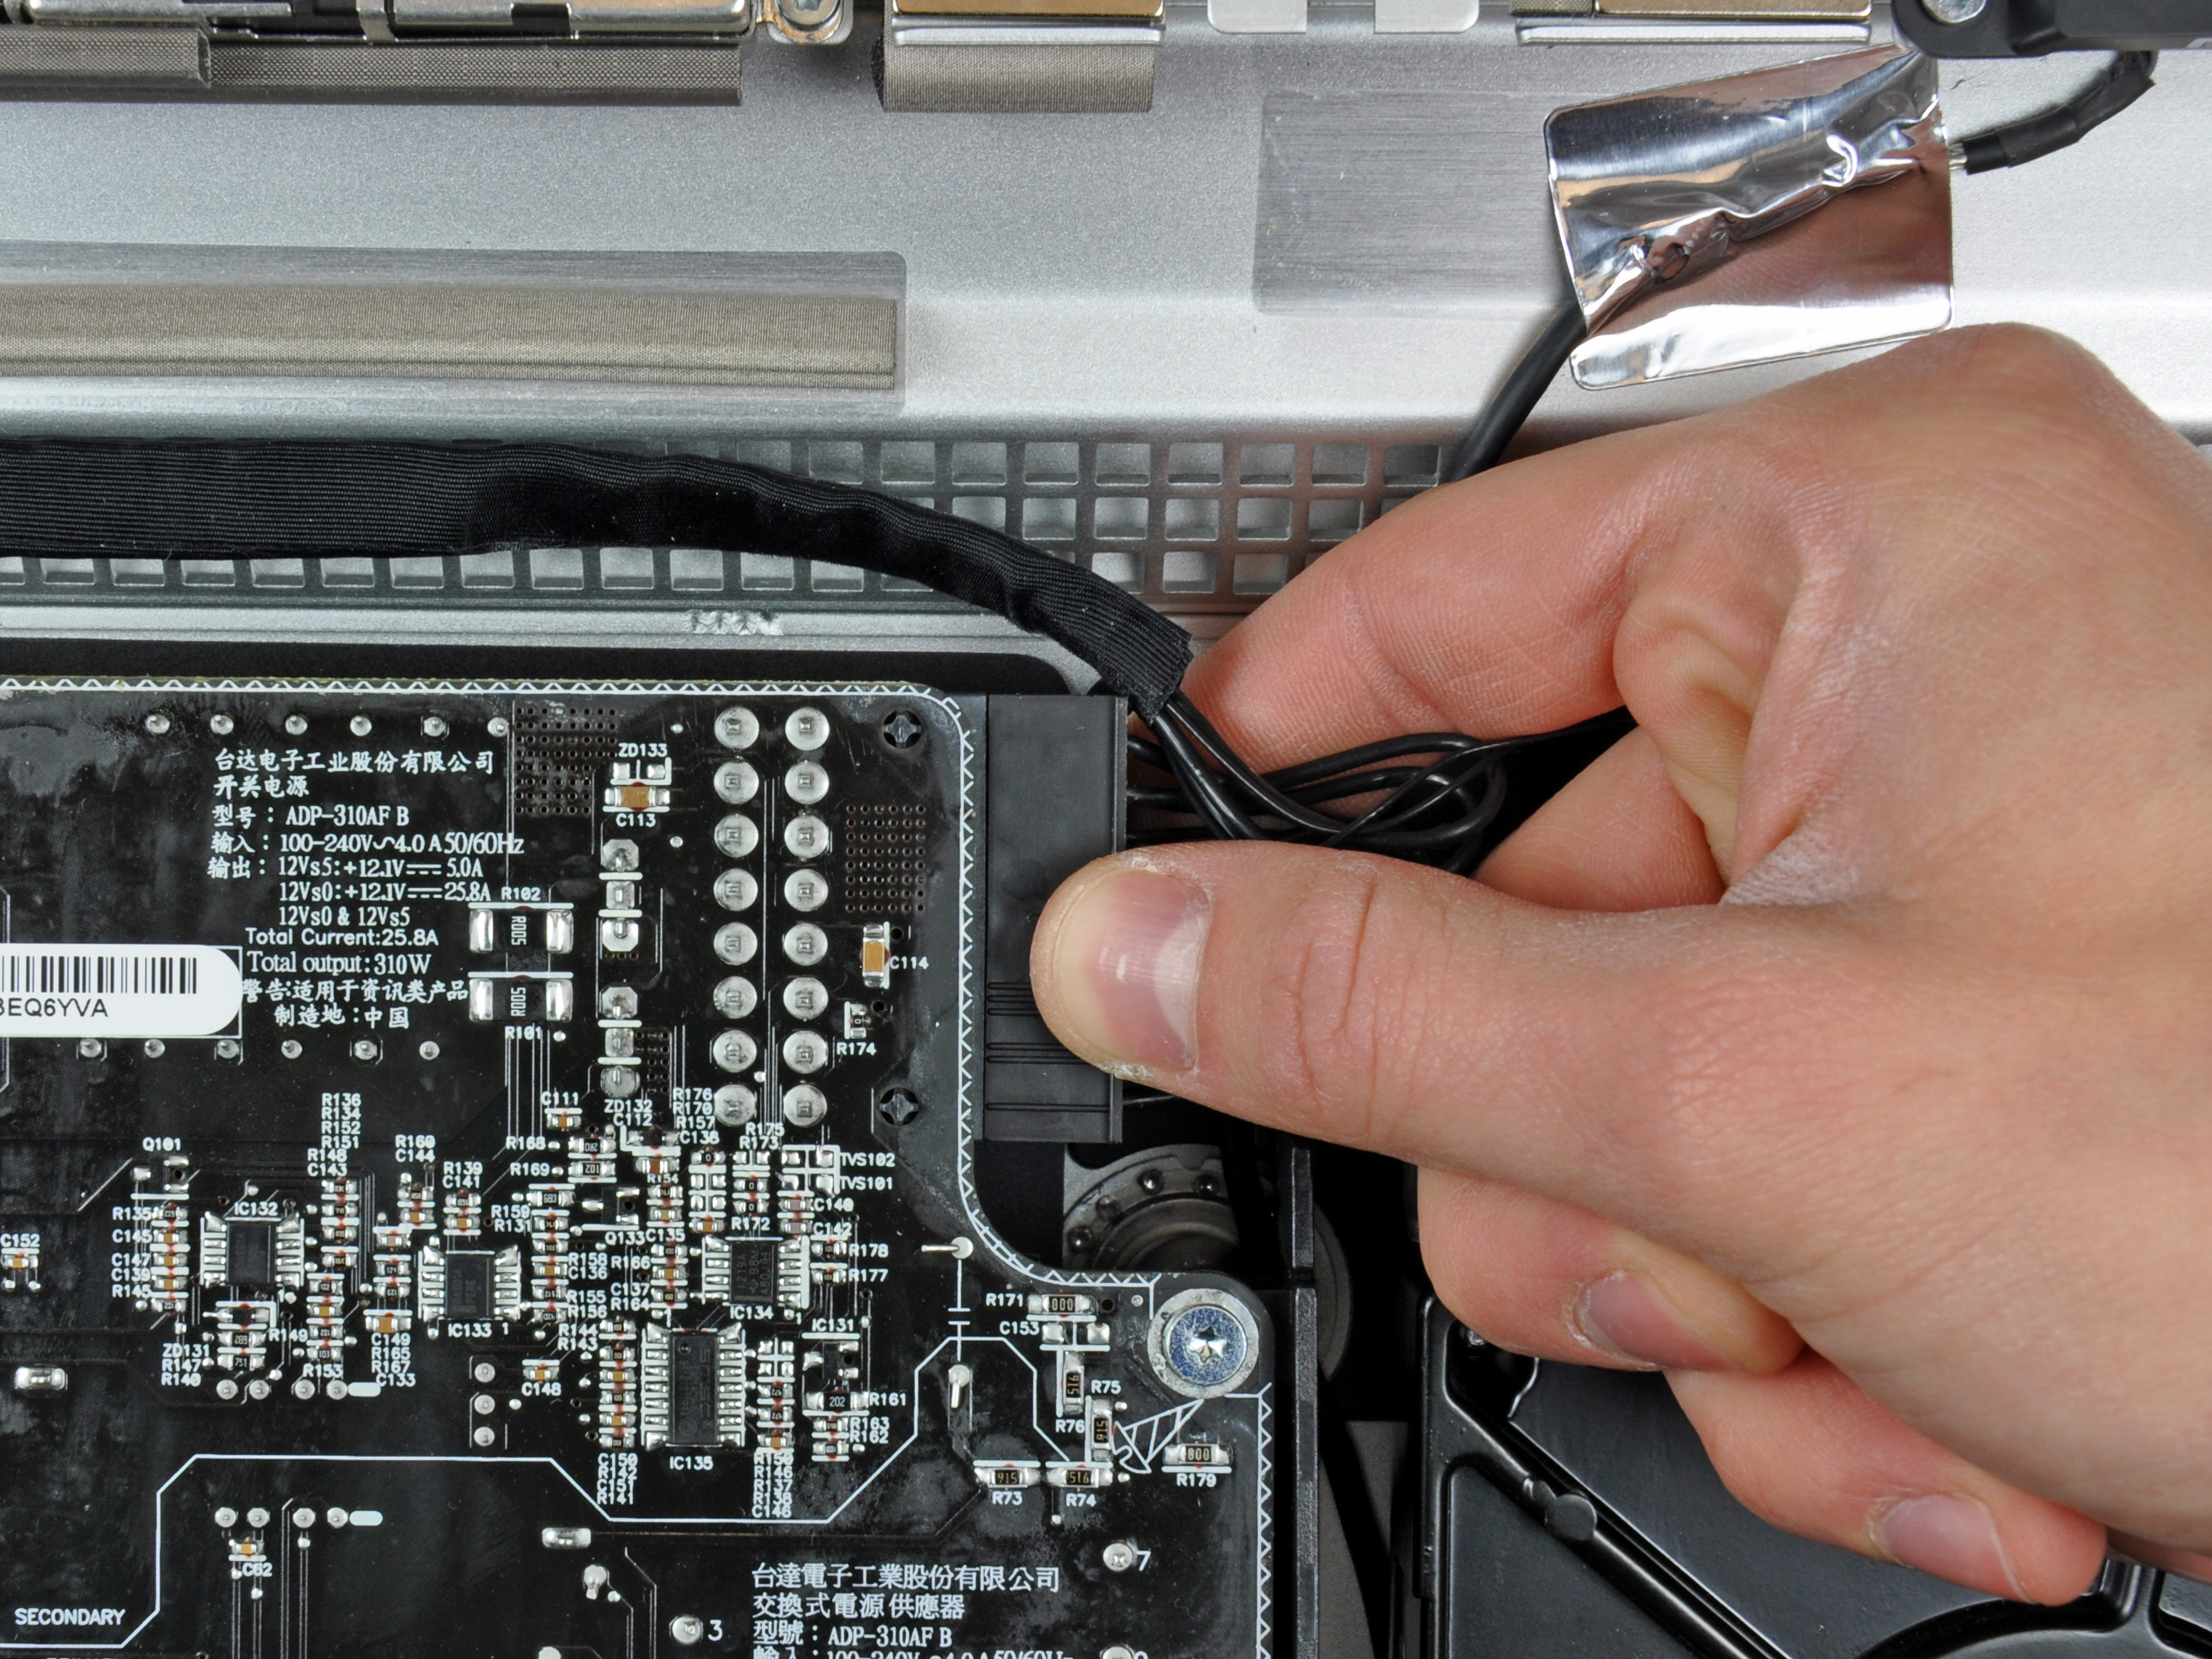 Imac Intel 27 Emc 2309 And 2374 Power Supply Replacement Ifixit Toy Carefully Look For Circuitry That You Can Bend Manipulate Repair Guide